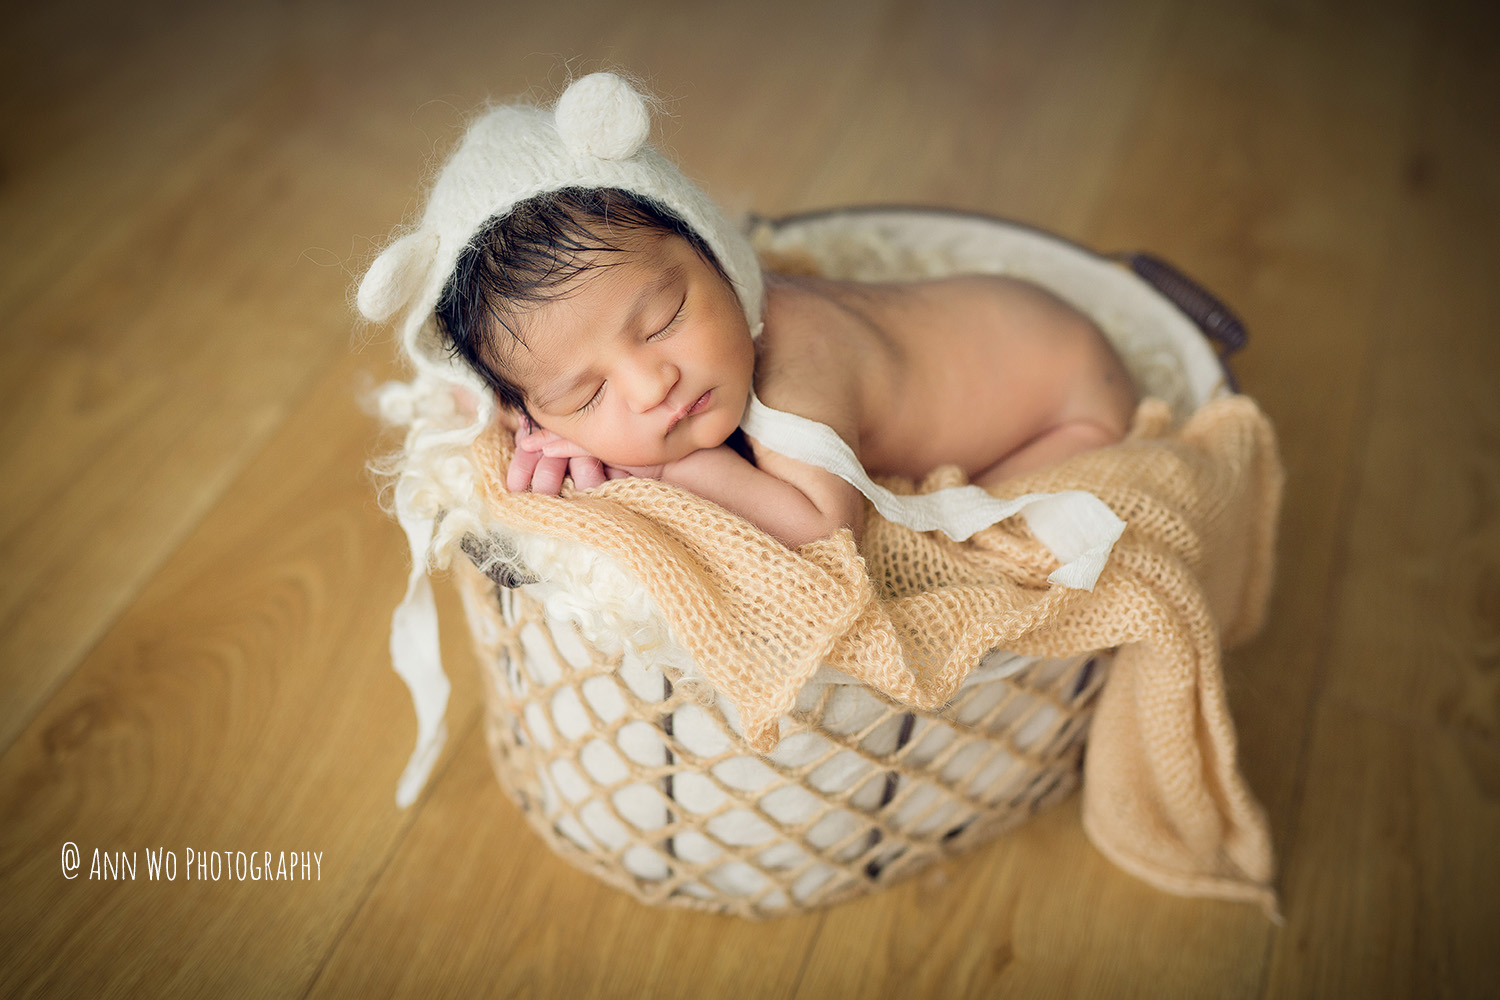 newborn-photography-berkshire-ann-wo-05.JPG